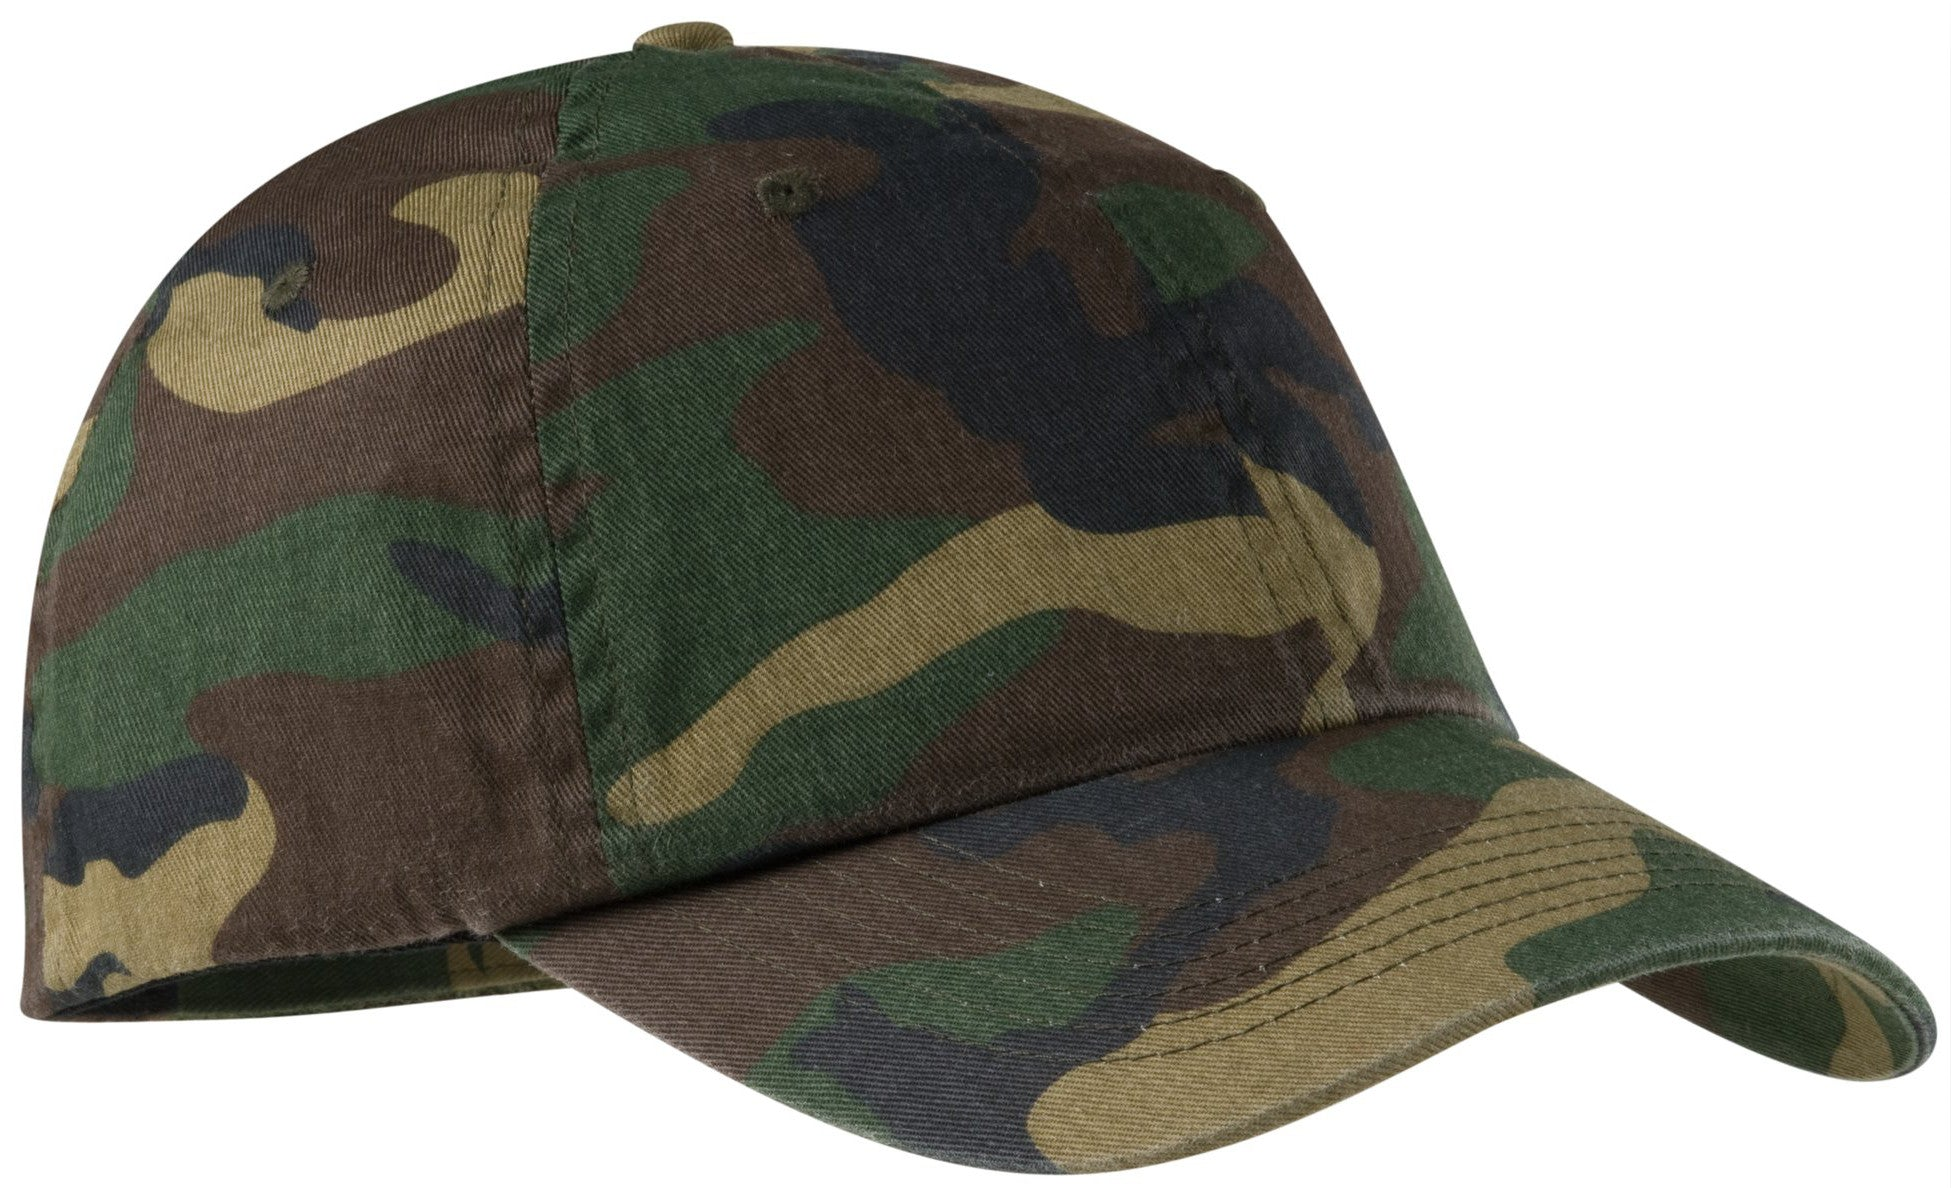 Men's Camouflage Prints Cap